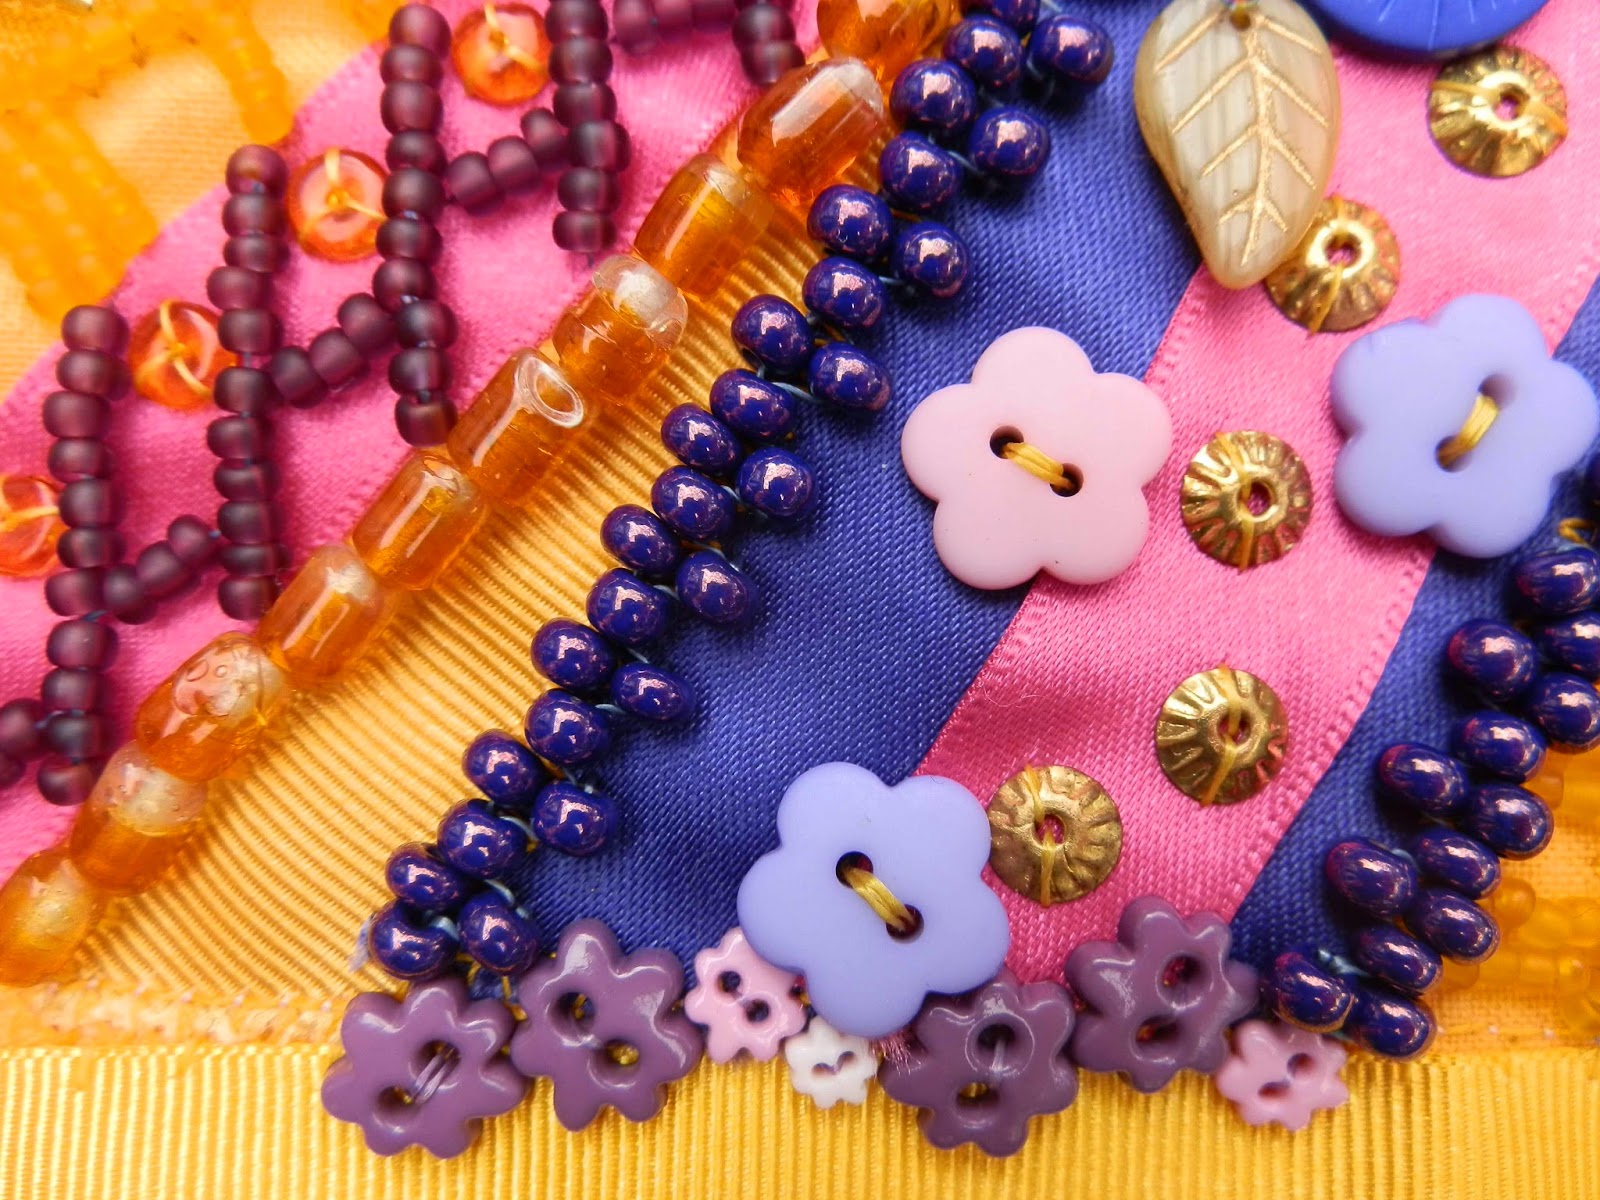 Detail showing rows of purple beads and small pink and purple flower shaped buttons